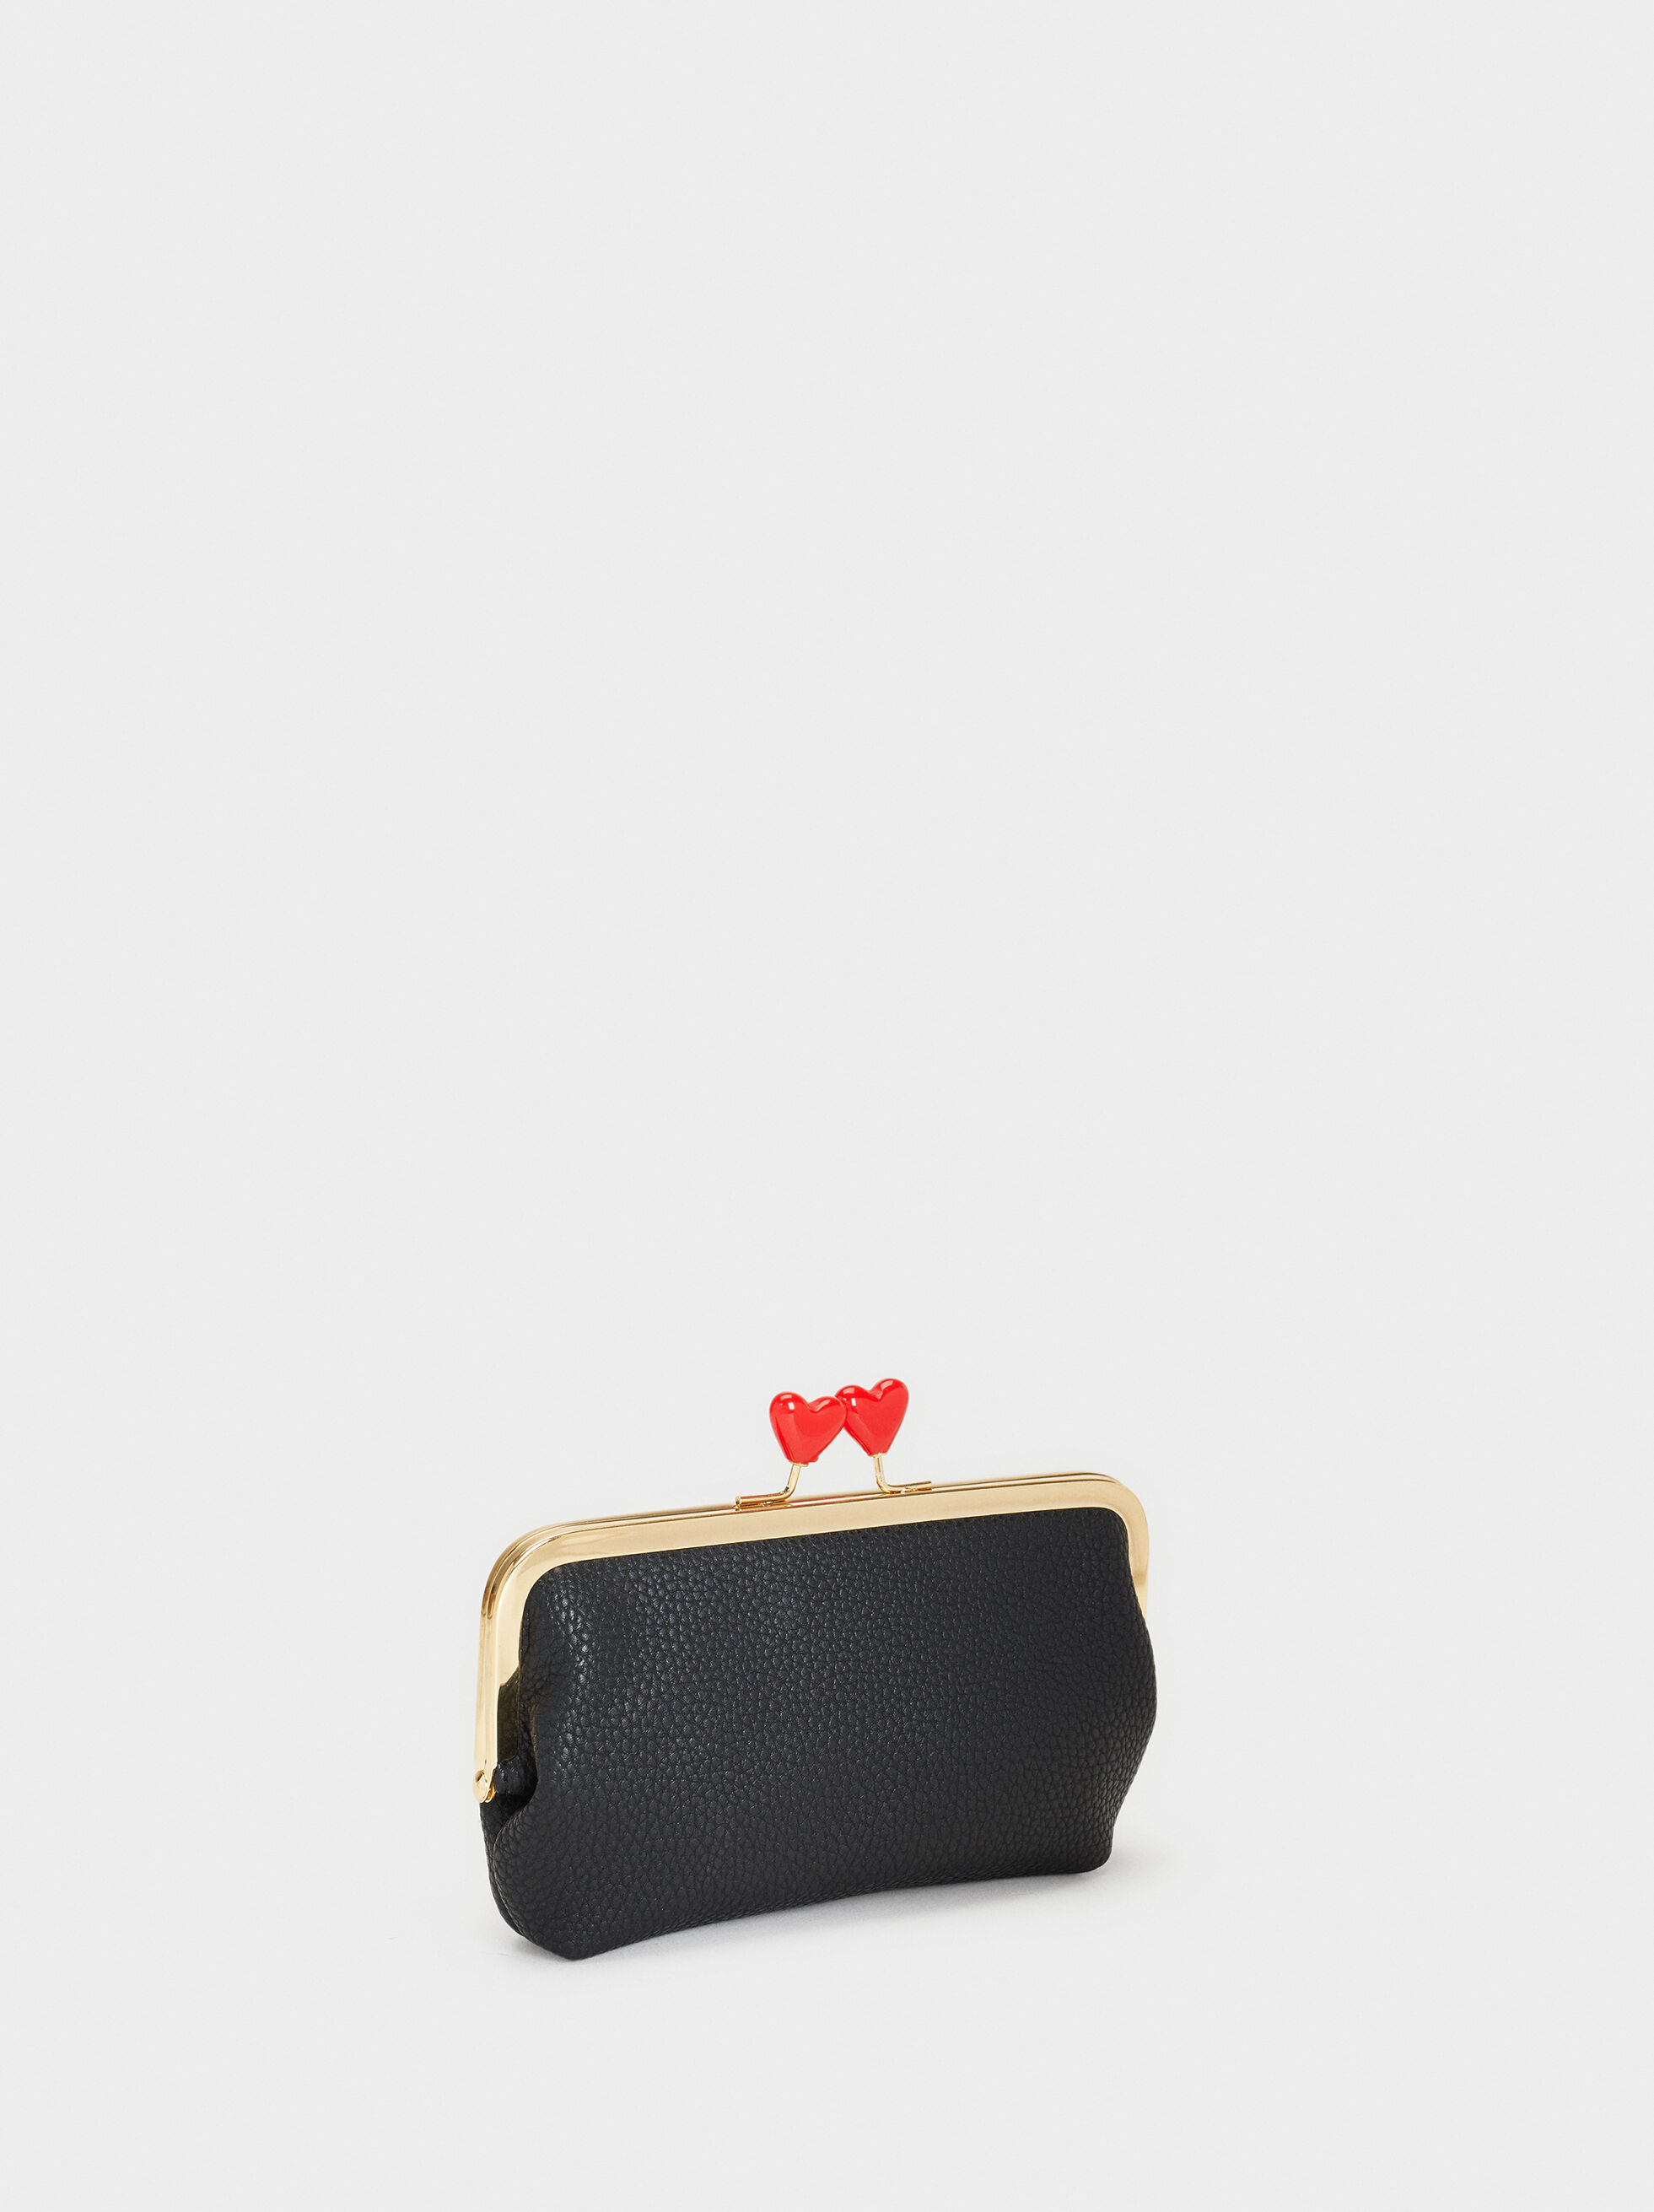 We Are Love Print Small Purse, Black, hi-res